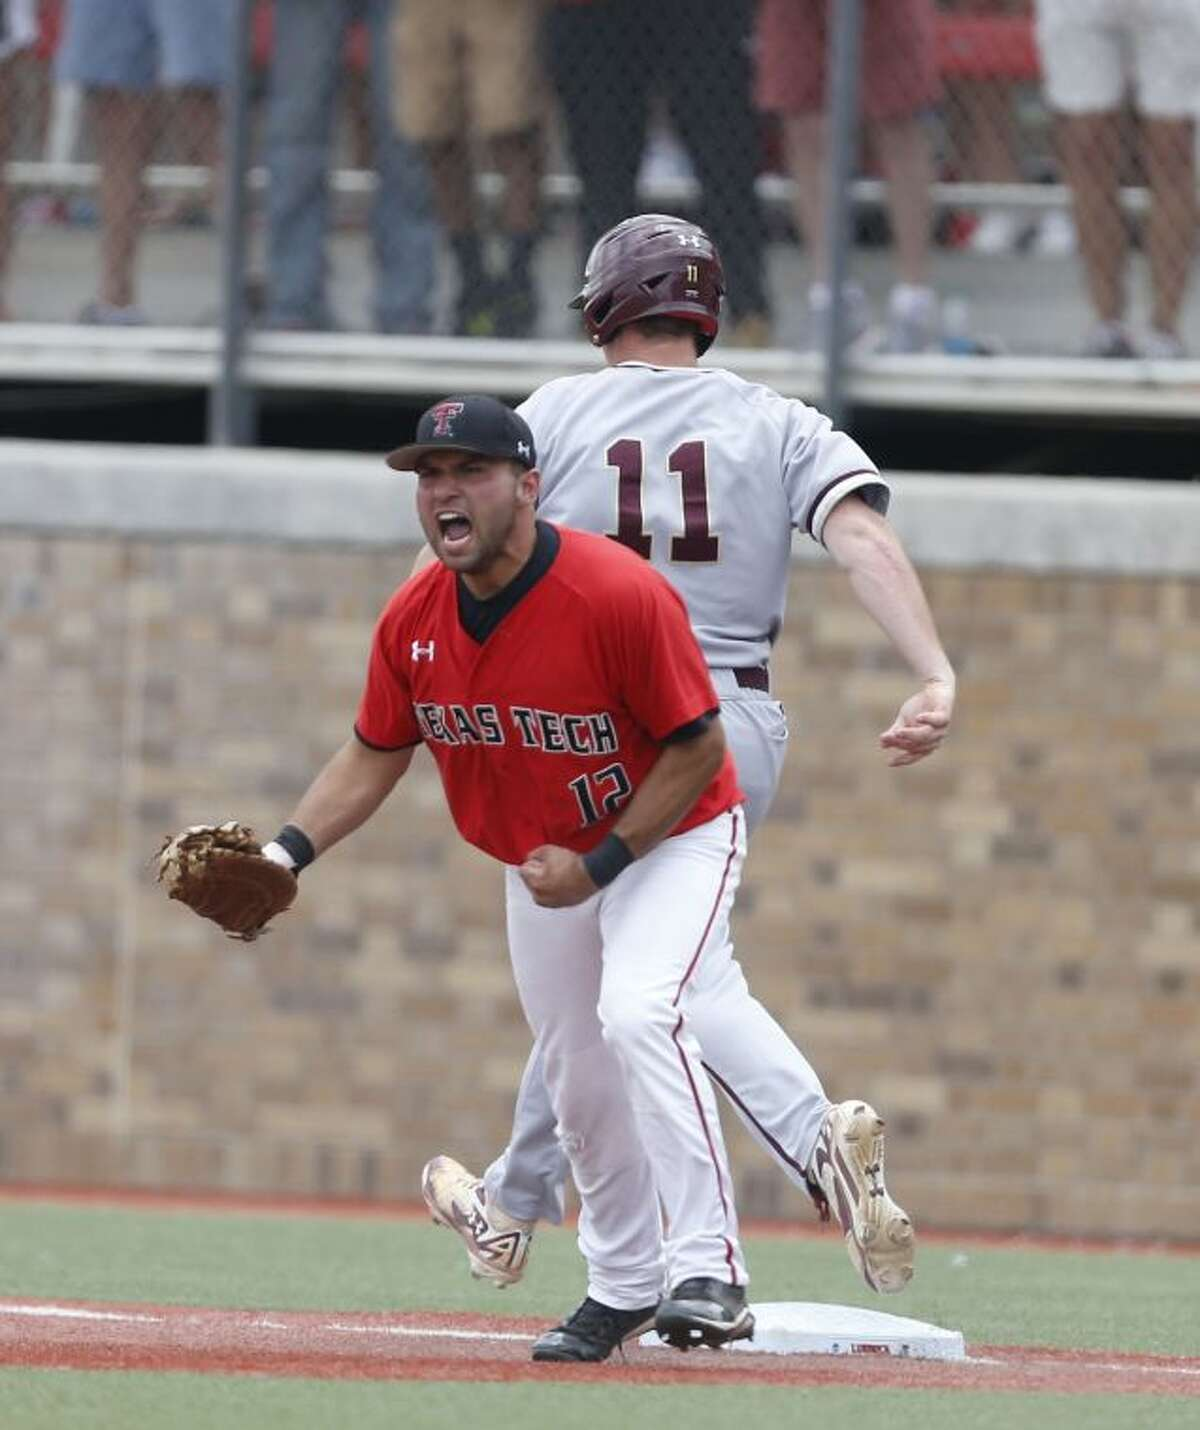 Texas Tech's Eric Gutierrez(12) celebrates the final out on College of Charleston's Nick Pappas during an NCAA college baseball tournament super regional game in Lubbock, Texas, Saturday, June 7, 2014. Texas Tech won 1-0. (AP Photo/Lubbock Avalanche Journal,Shannon Wilson)